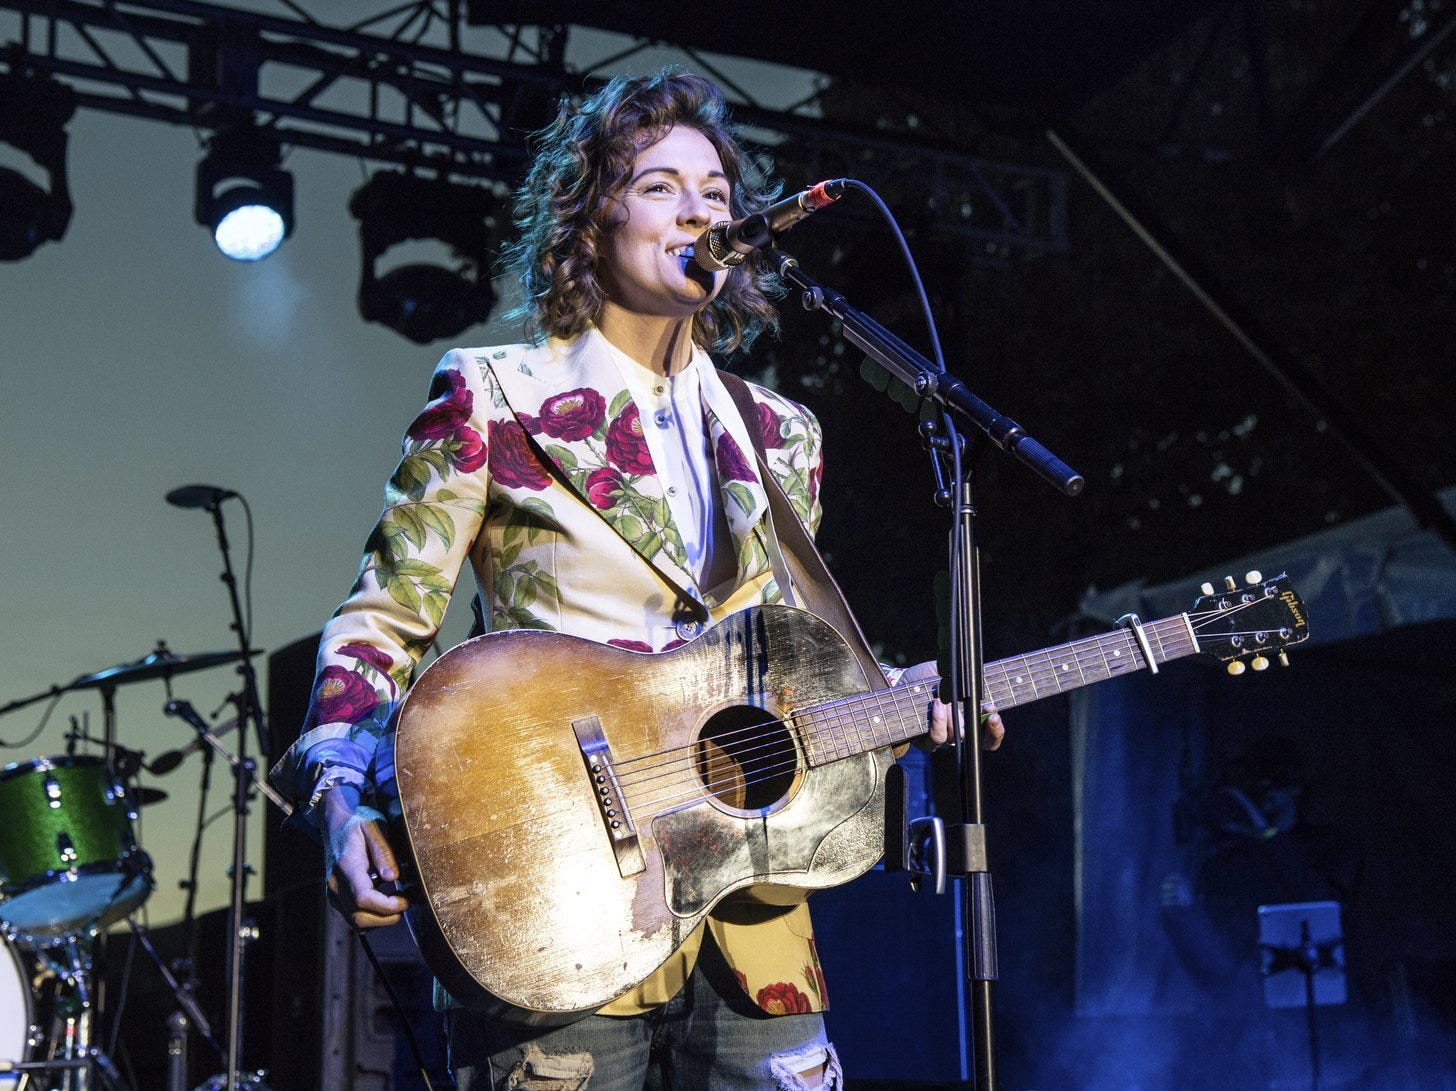 Grammy Award winner Brandi Carlile booked for Lansing's Common Ground Music Festival